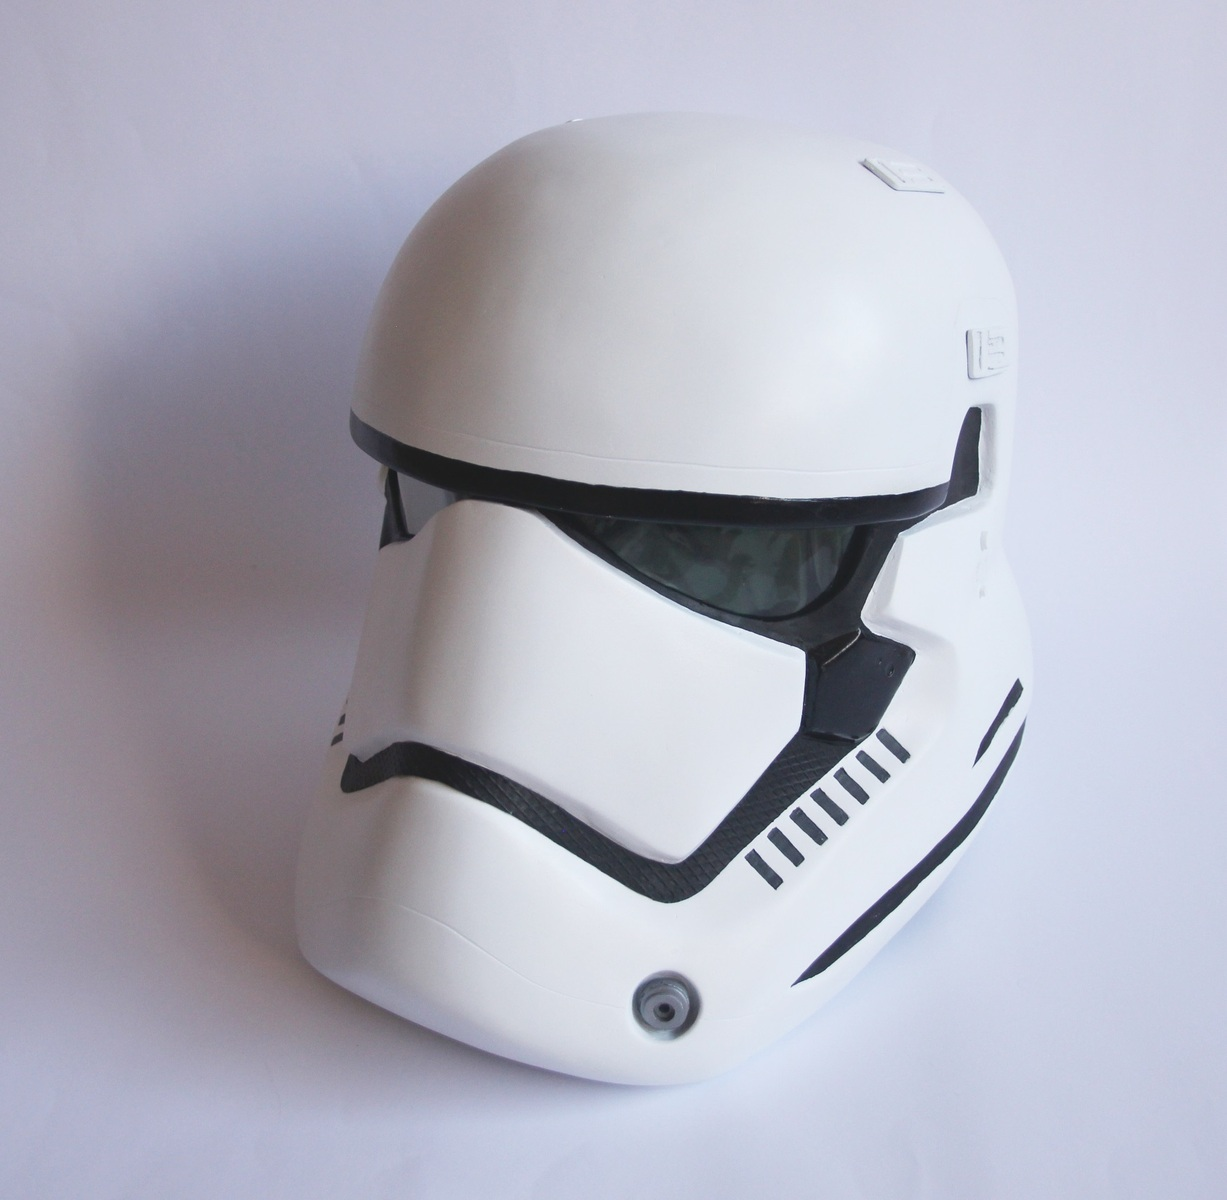 This First Order Stormtrooper helmet was created in a wearable 1:1 scale using paper, fibreglass, Bondo, and various other household items. Working time was approximately 1 month.